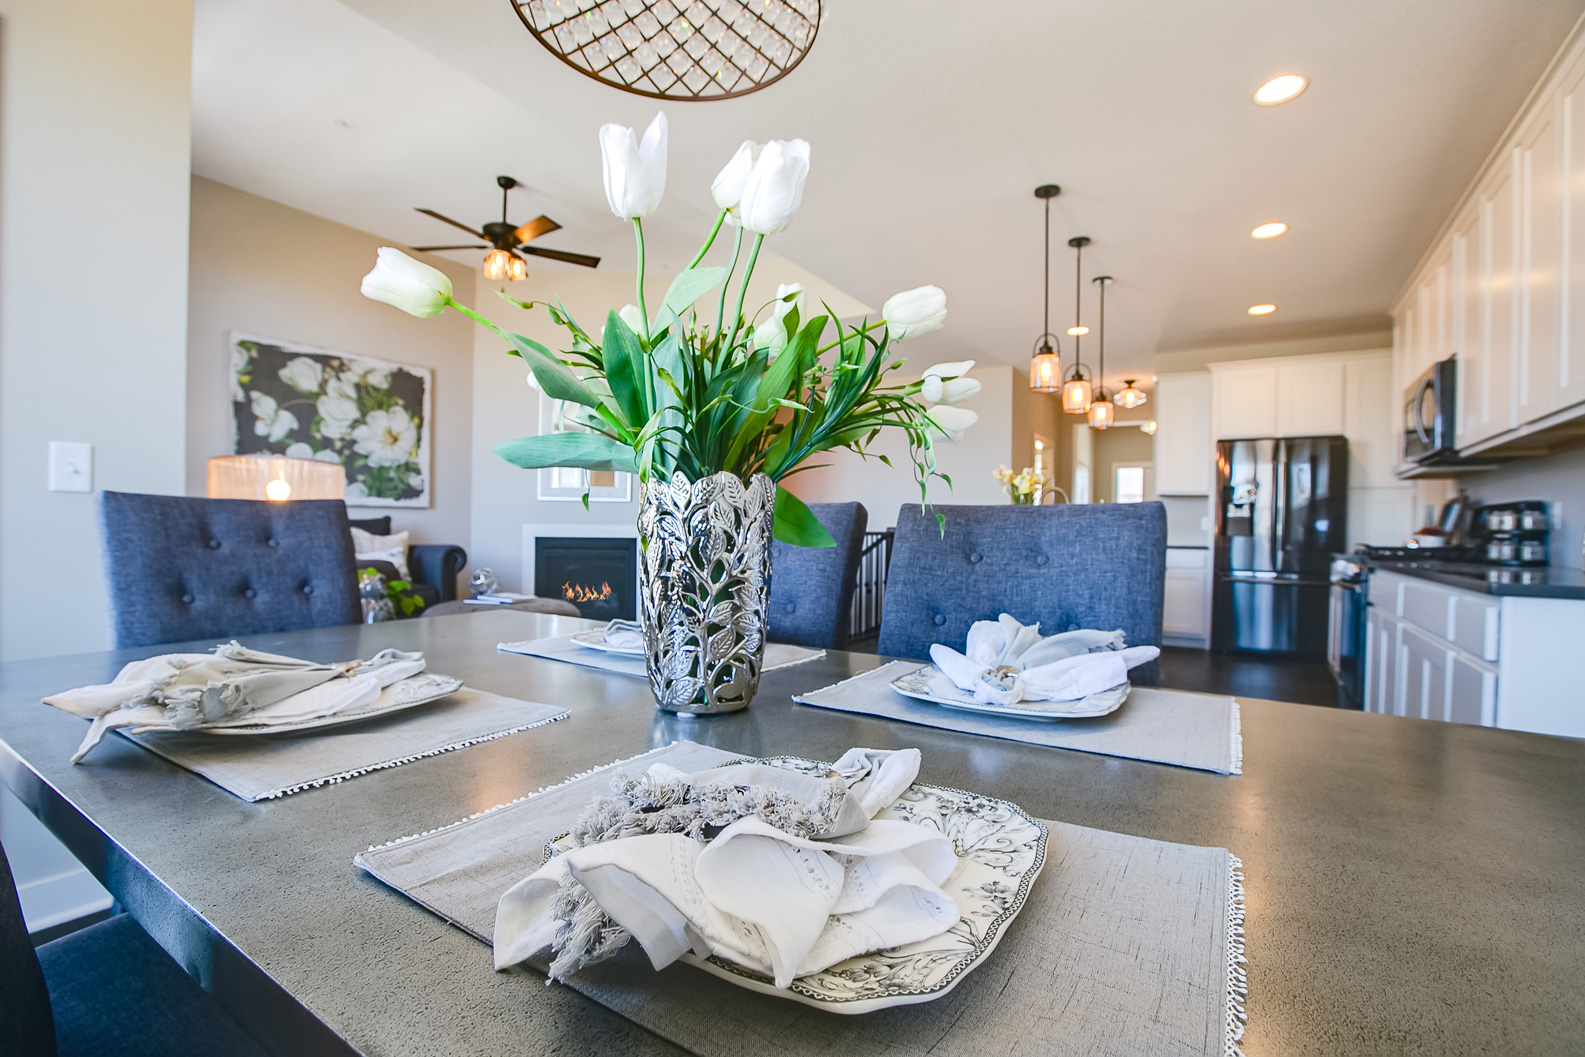 Mastery is in the details!  Lionheart's designers combine textures to create a luxury stage in this small, new construction townhome #18657 ~ Staged by Lionheart